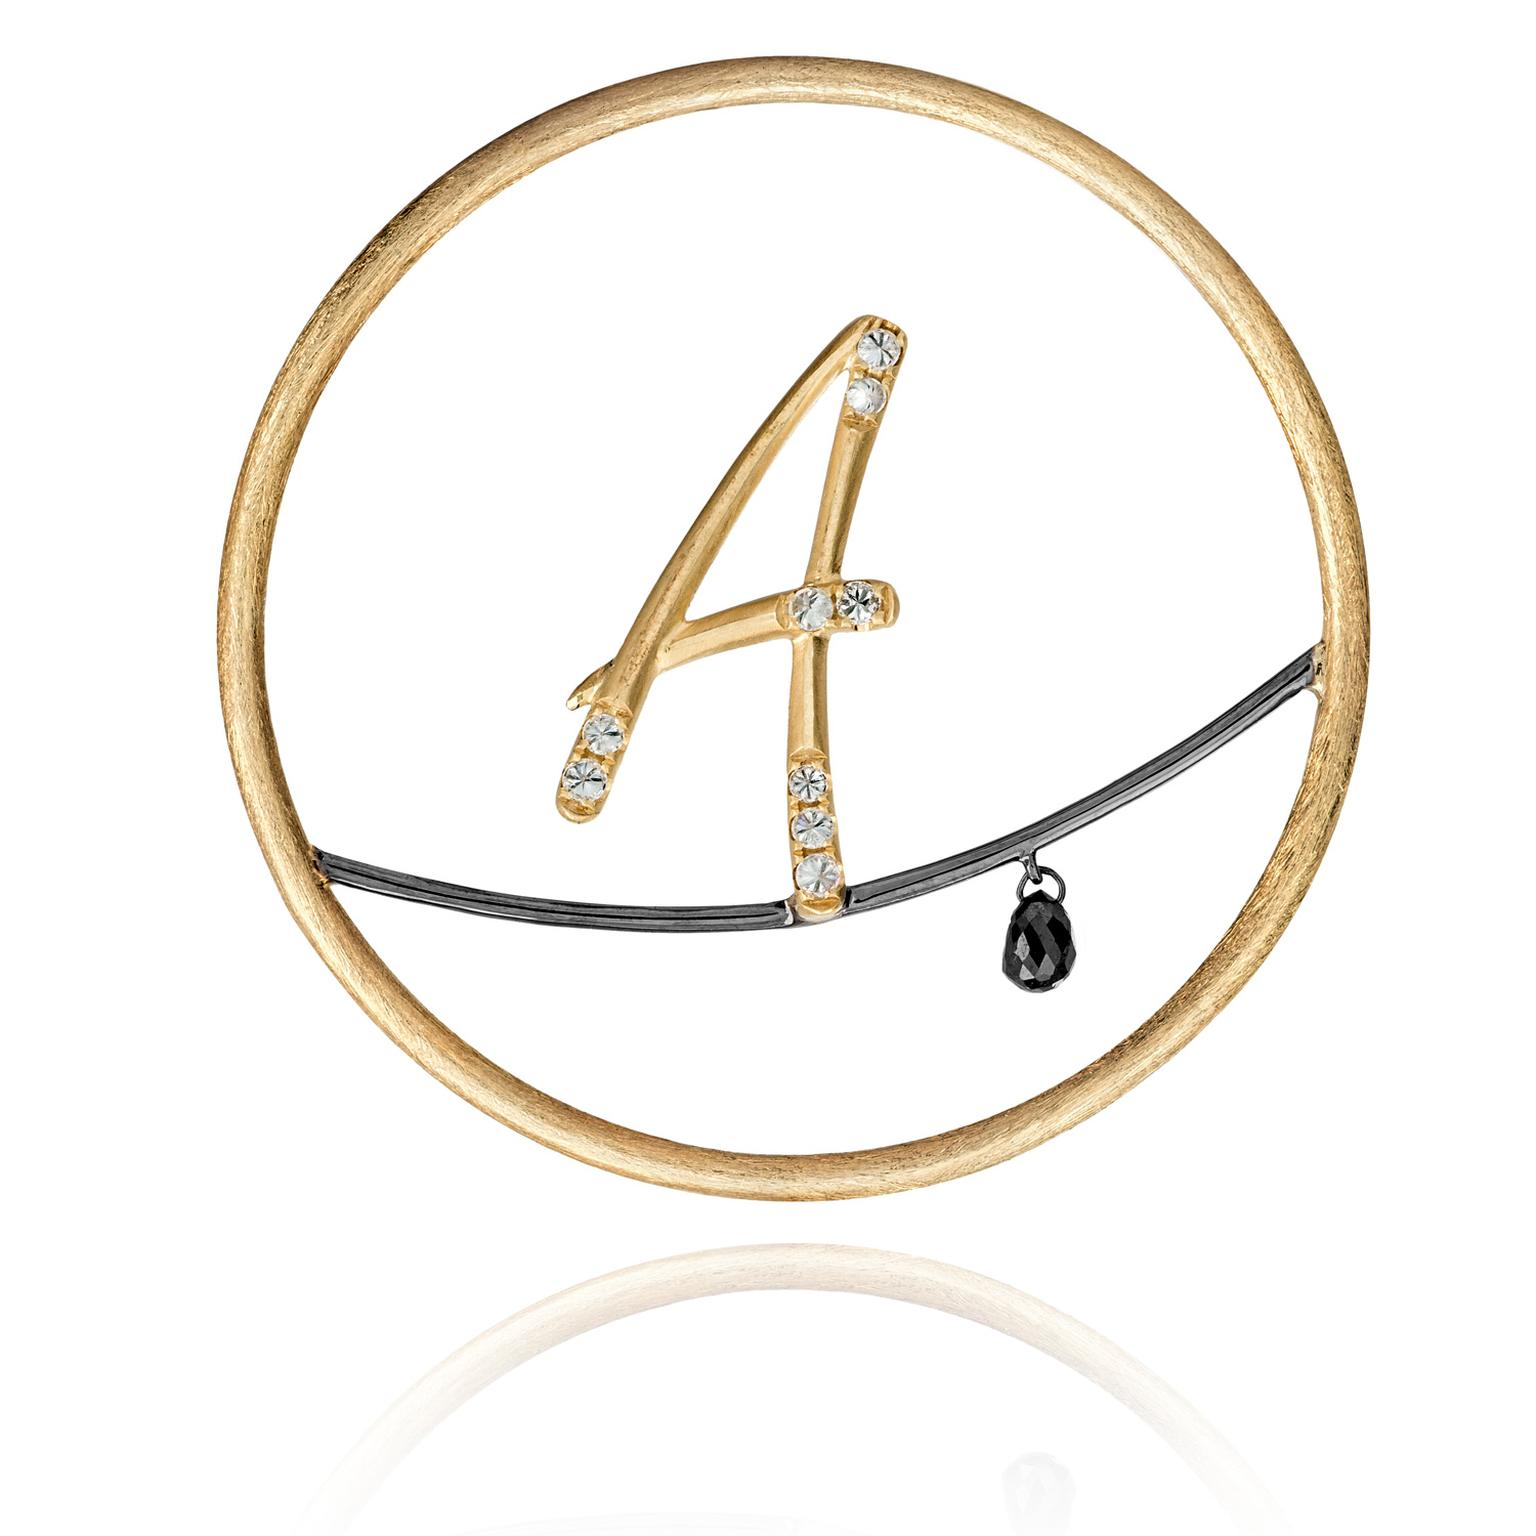 Annoushka-18-carat-yellow-gold-and-diamond-alaphabet-hoop-earring